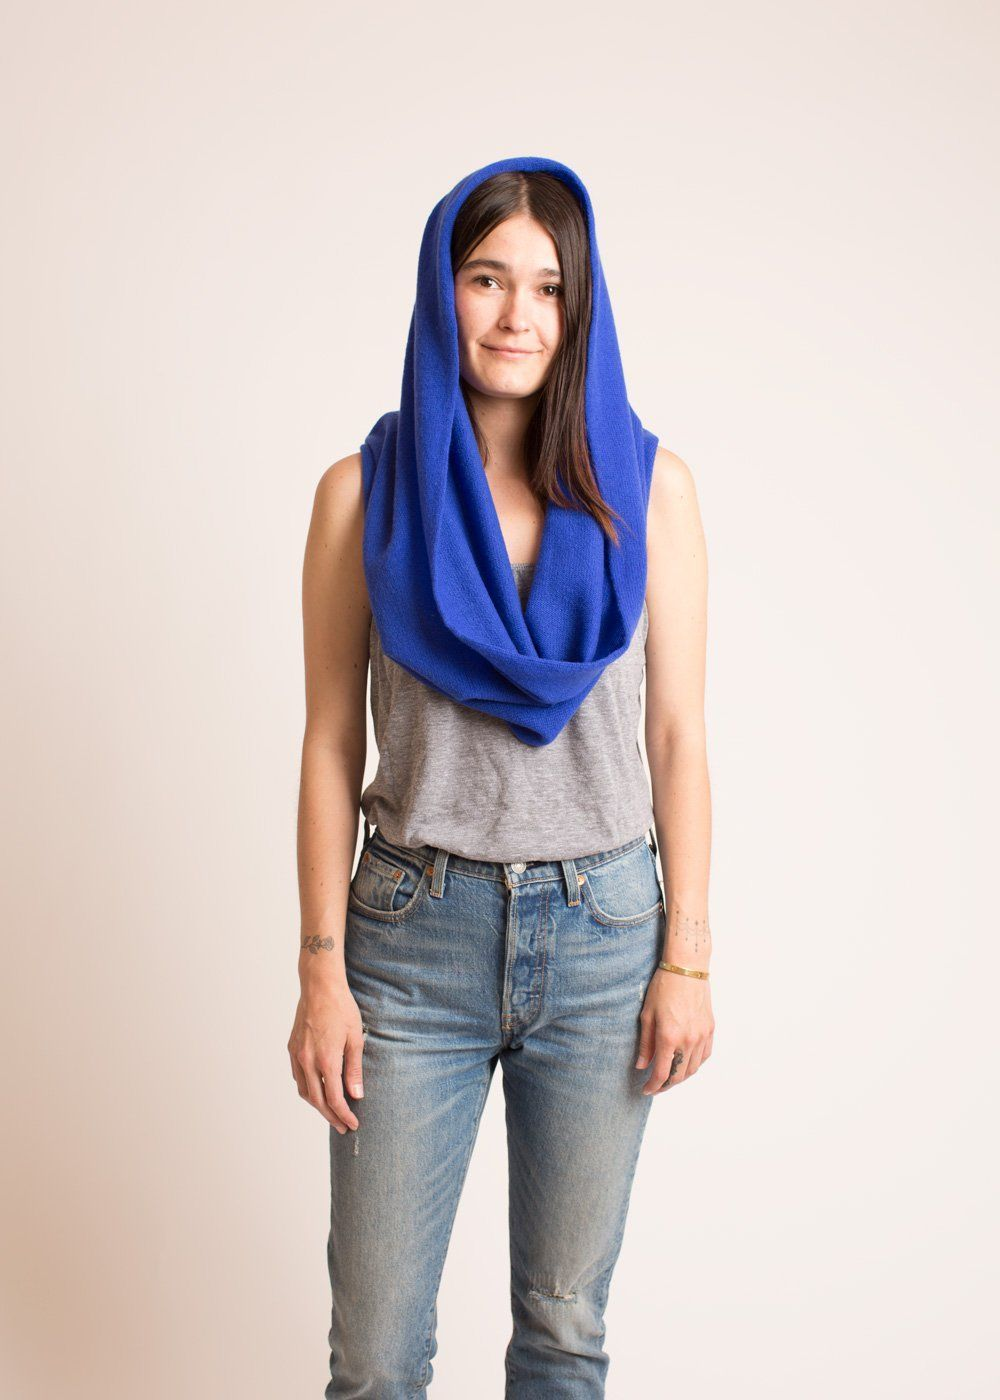 how to wear an infinity scarf in the summer